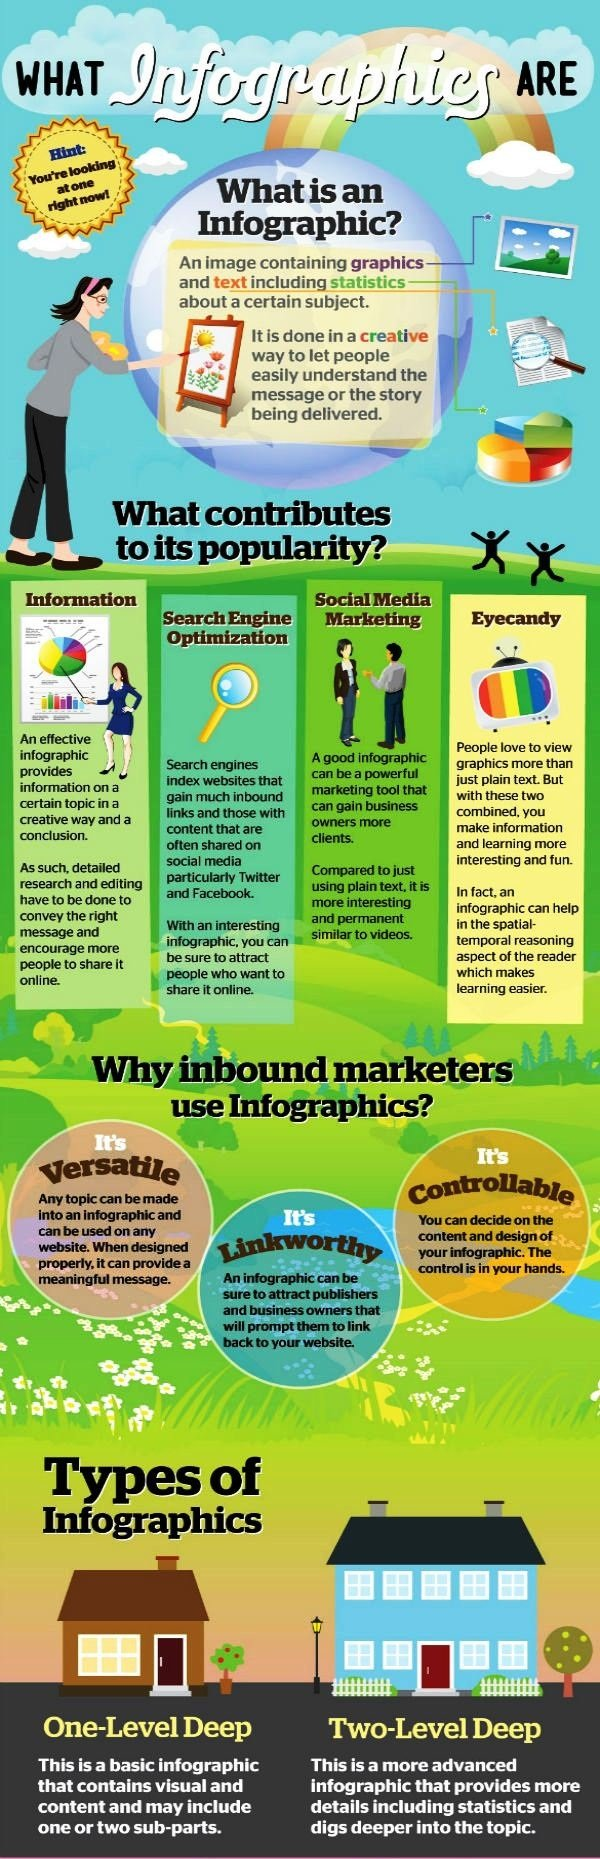 What #Infographics are? #Infographic